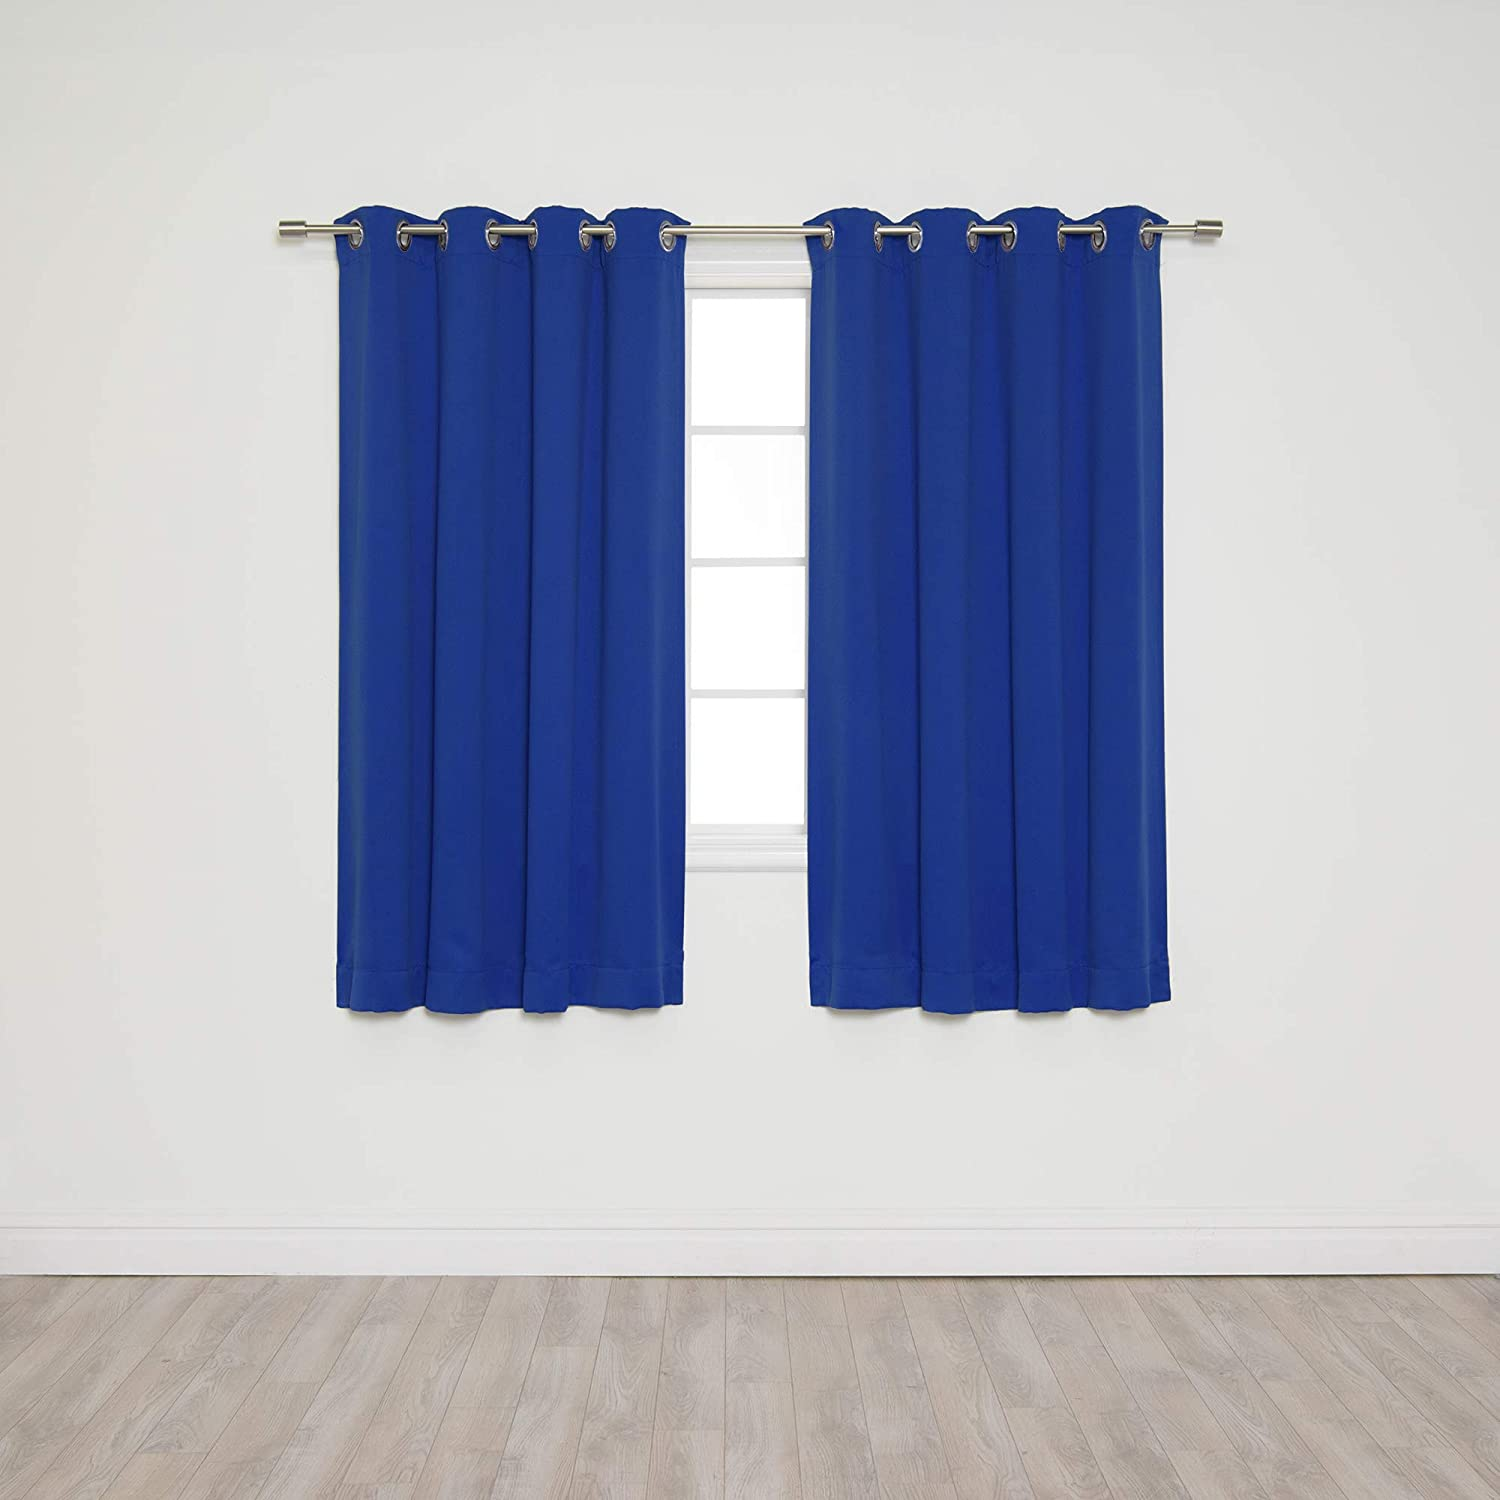 "Best Home Fashion Blackout Curtain Panels - Premium Thermal Insulated Window Treatment Blackout Drapes for Bedroom - Silver Stainless Steel Grommet Top – Royal Blue - 52"" W x 63"" L - (Set of 2 Panels)"